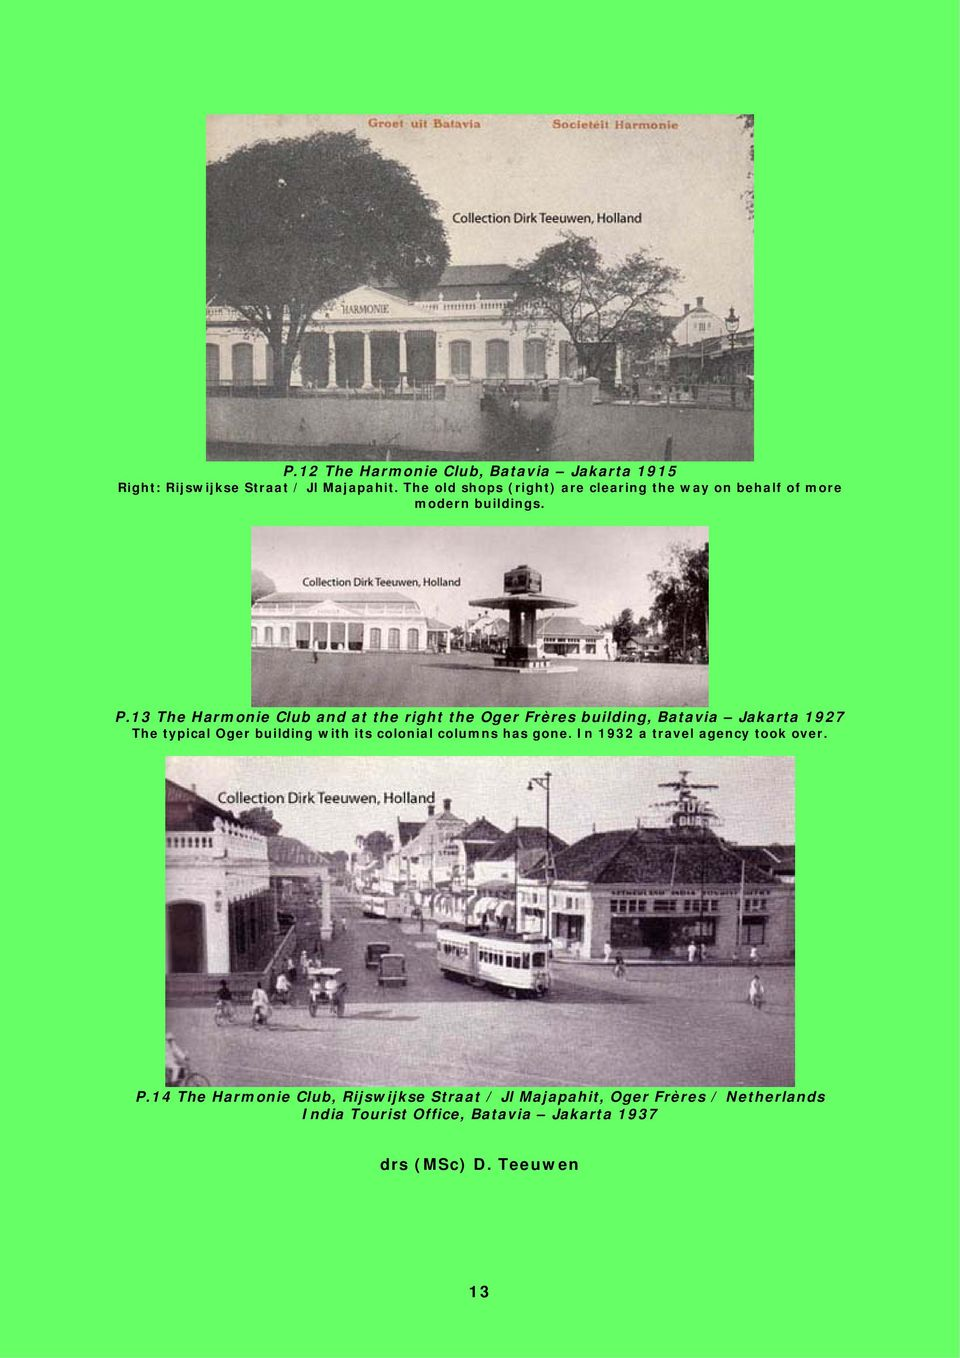 13 The Harmonie Club and at the right the Oger Frères building, Batavia Jakarta 1927 The typical Oger building with its